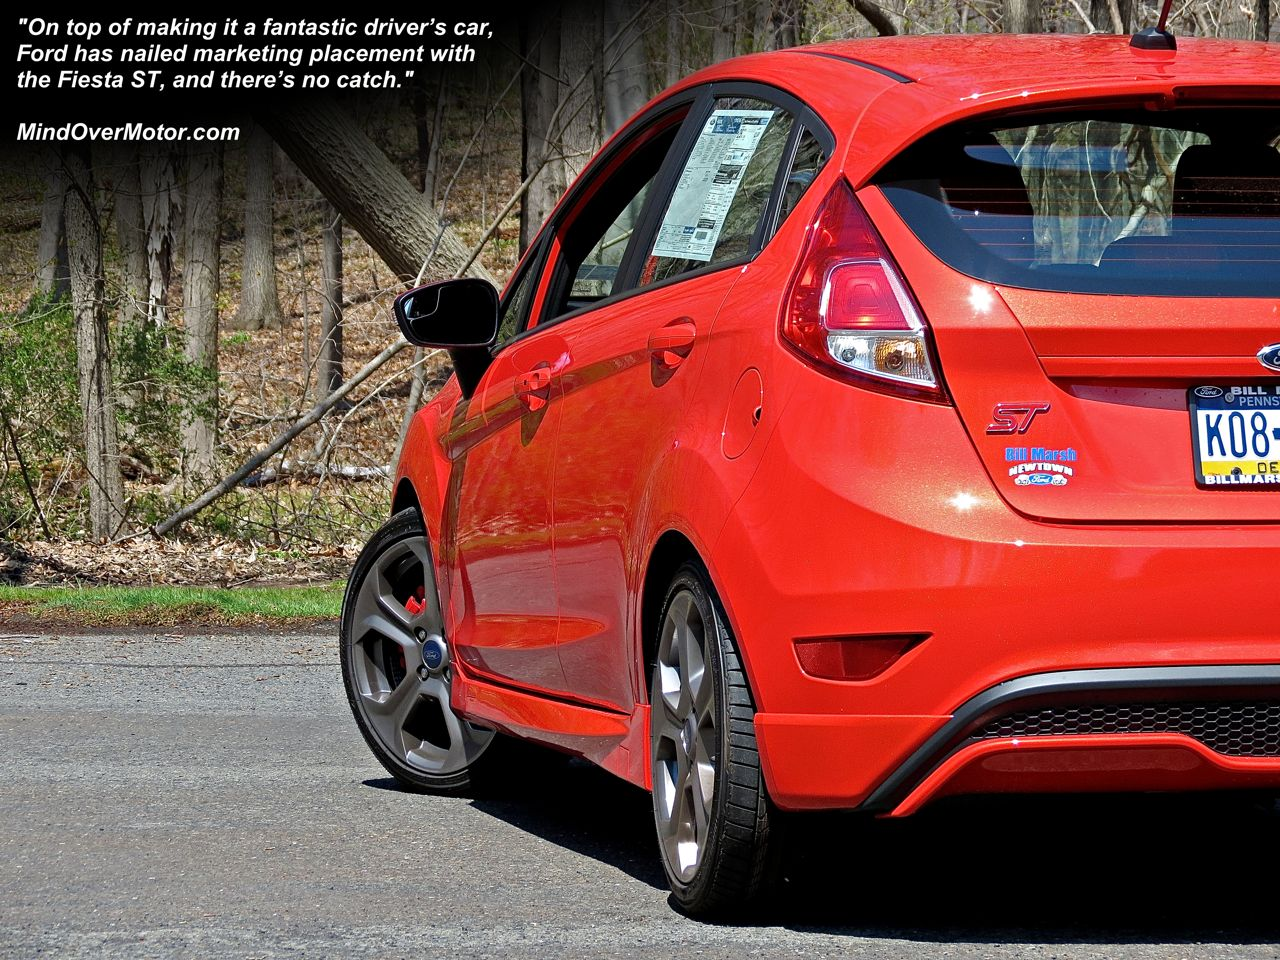 Ford Fiesta ST rear hot hatchback